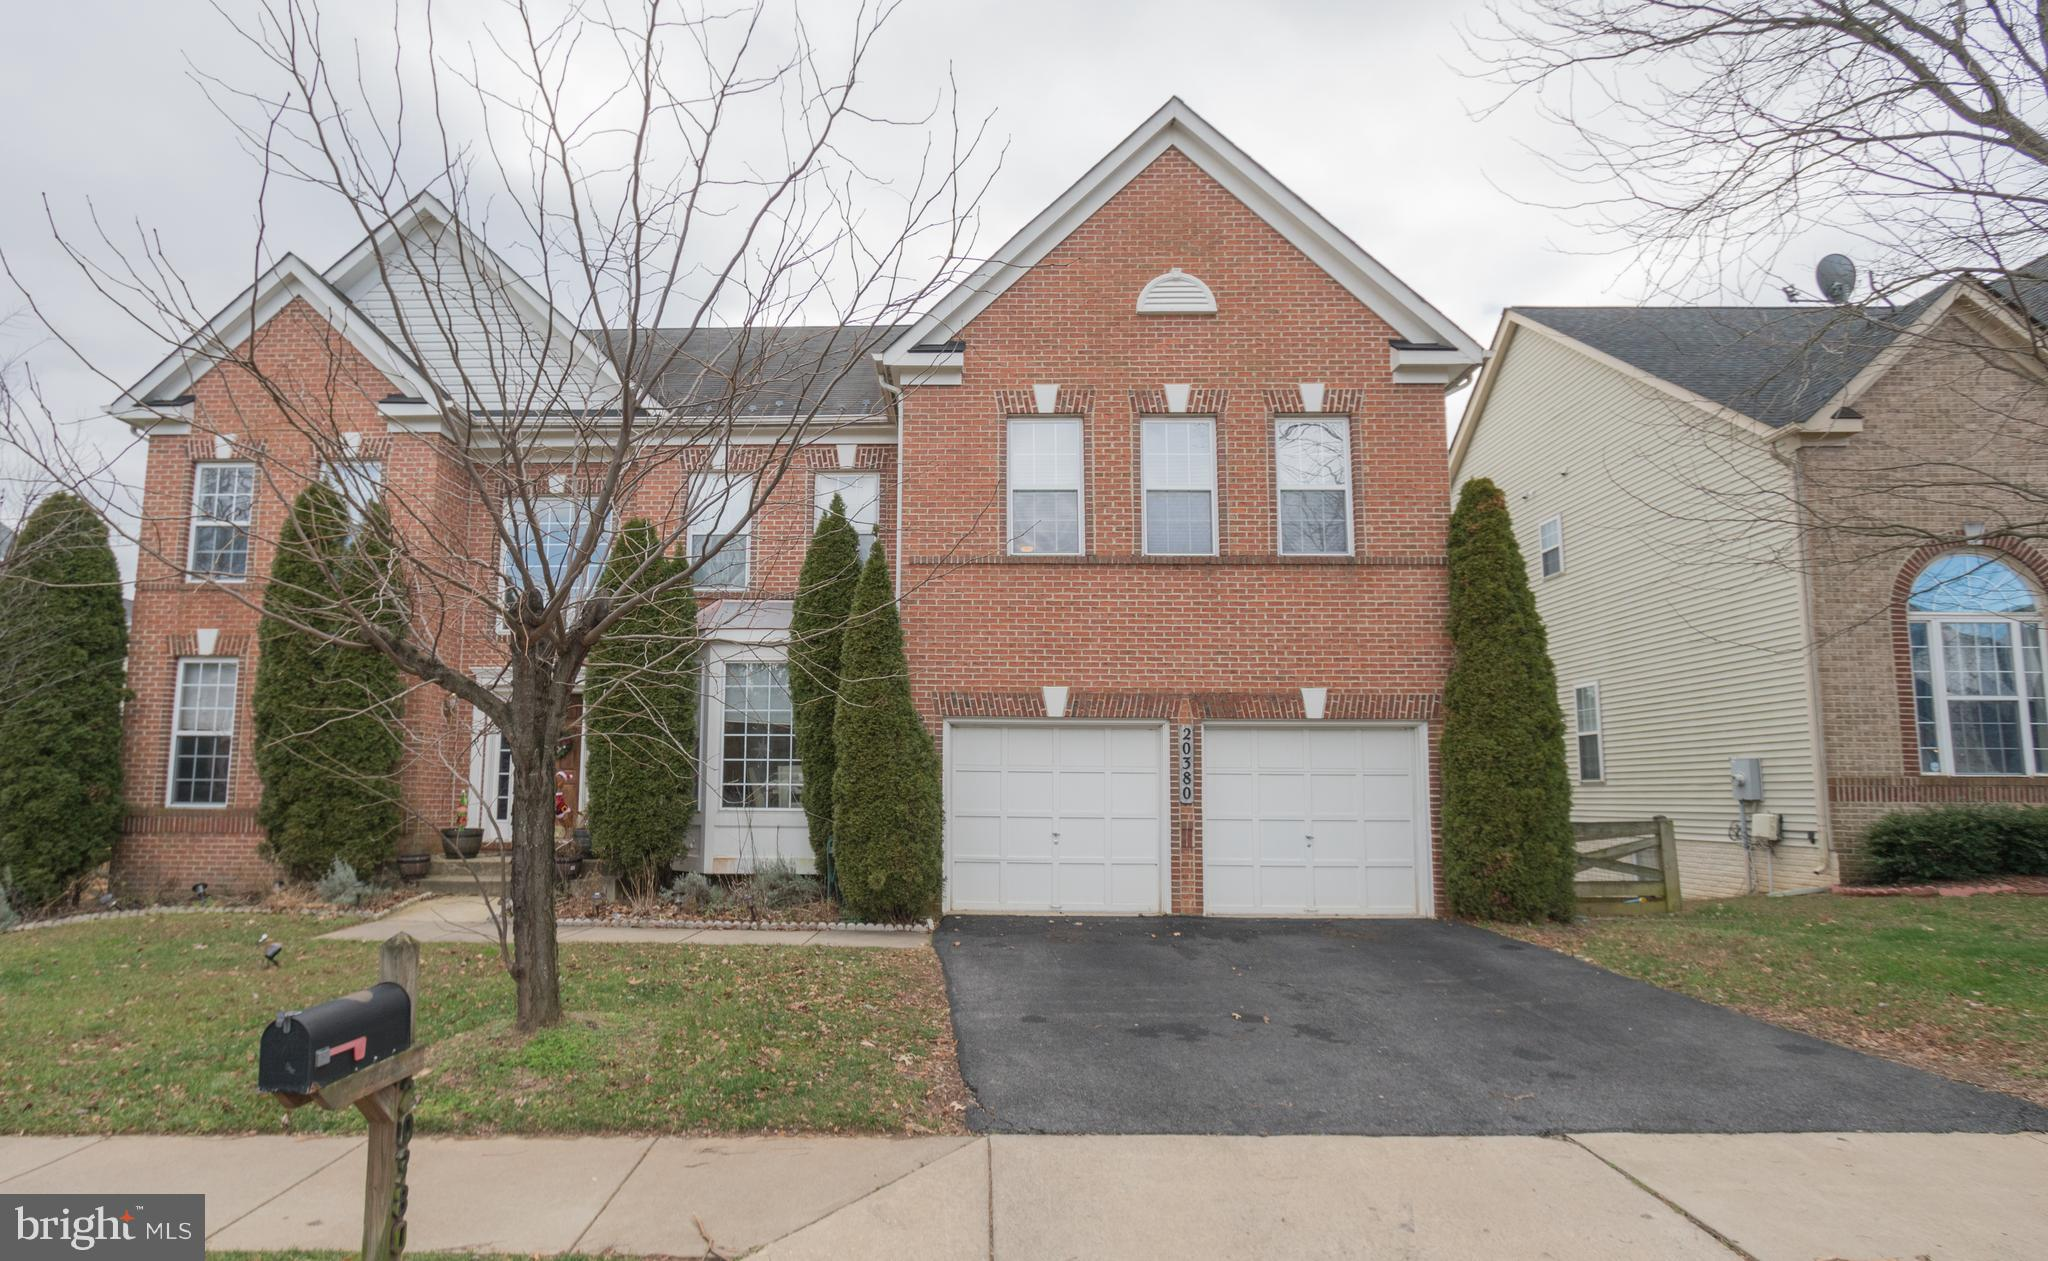 20380 MILL POND TERRACE, GERMANTOWN, MD 20876